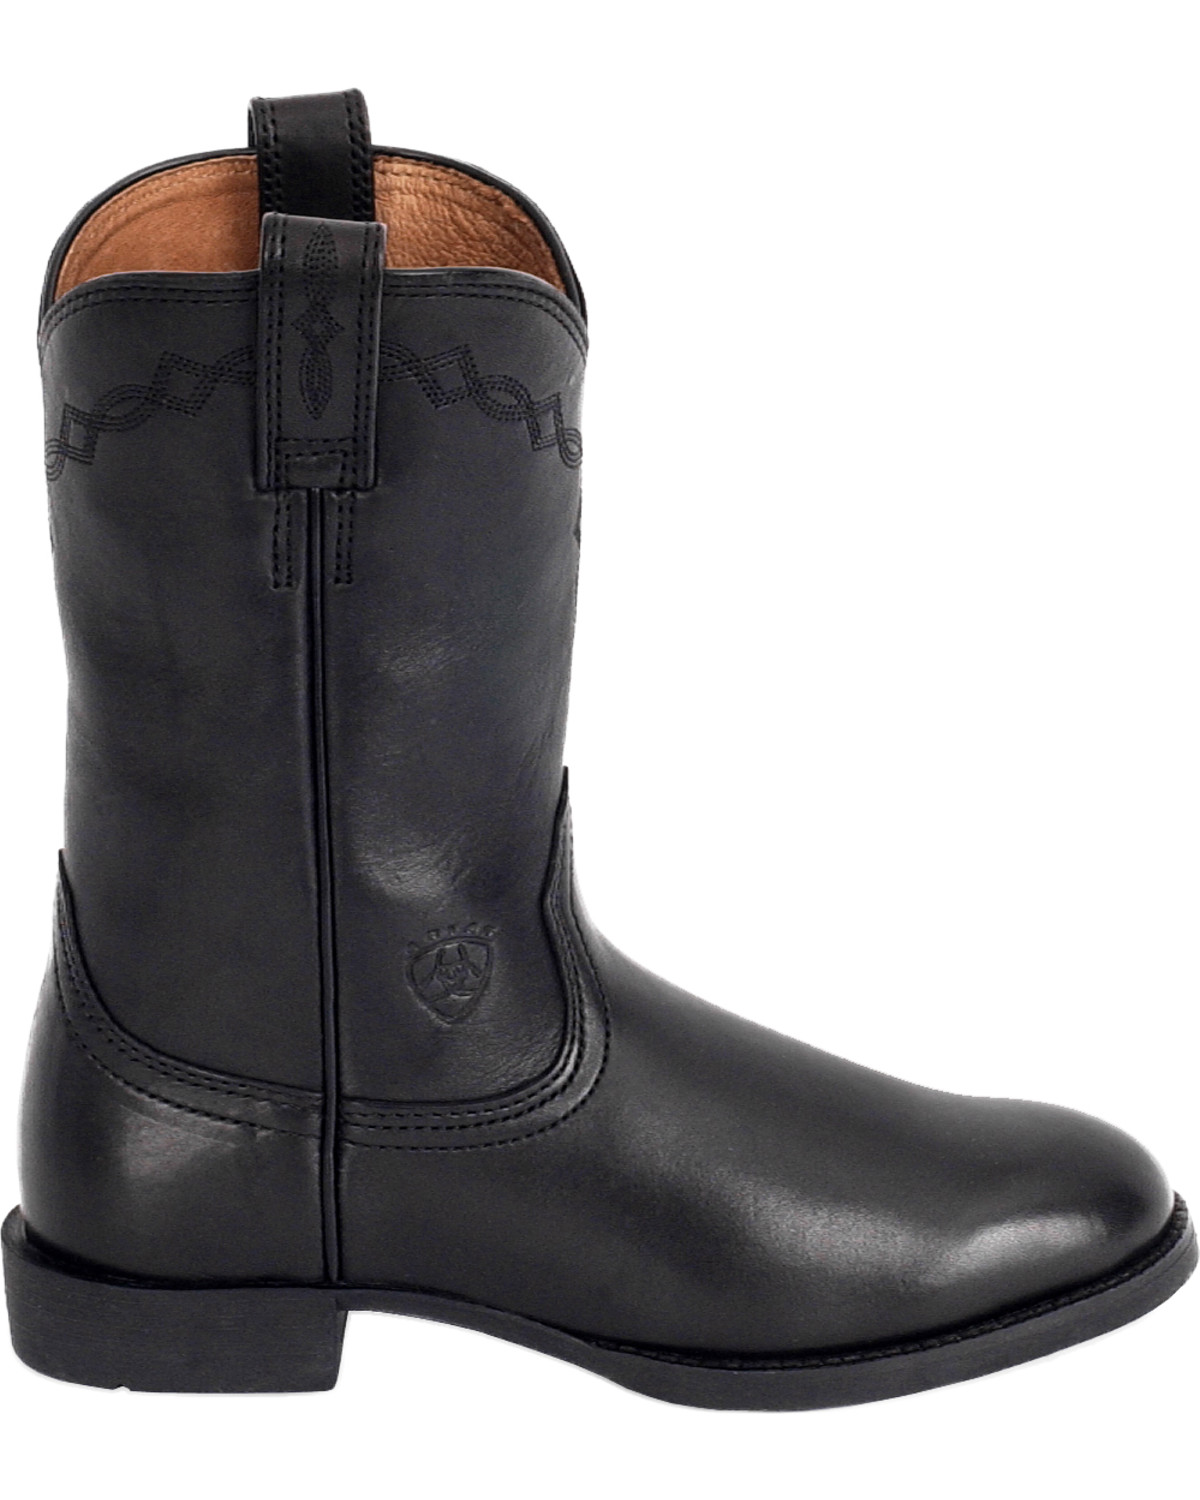 Ariat Long Black Riding Boots - Shoes & Boots Review